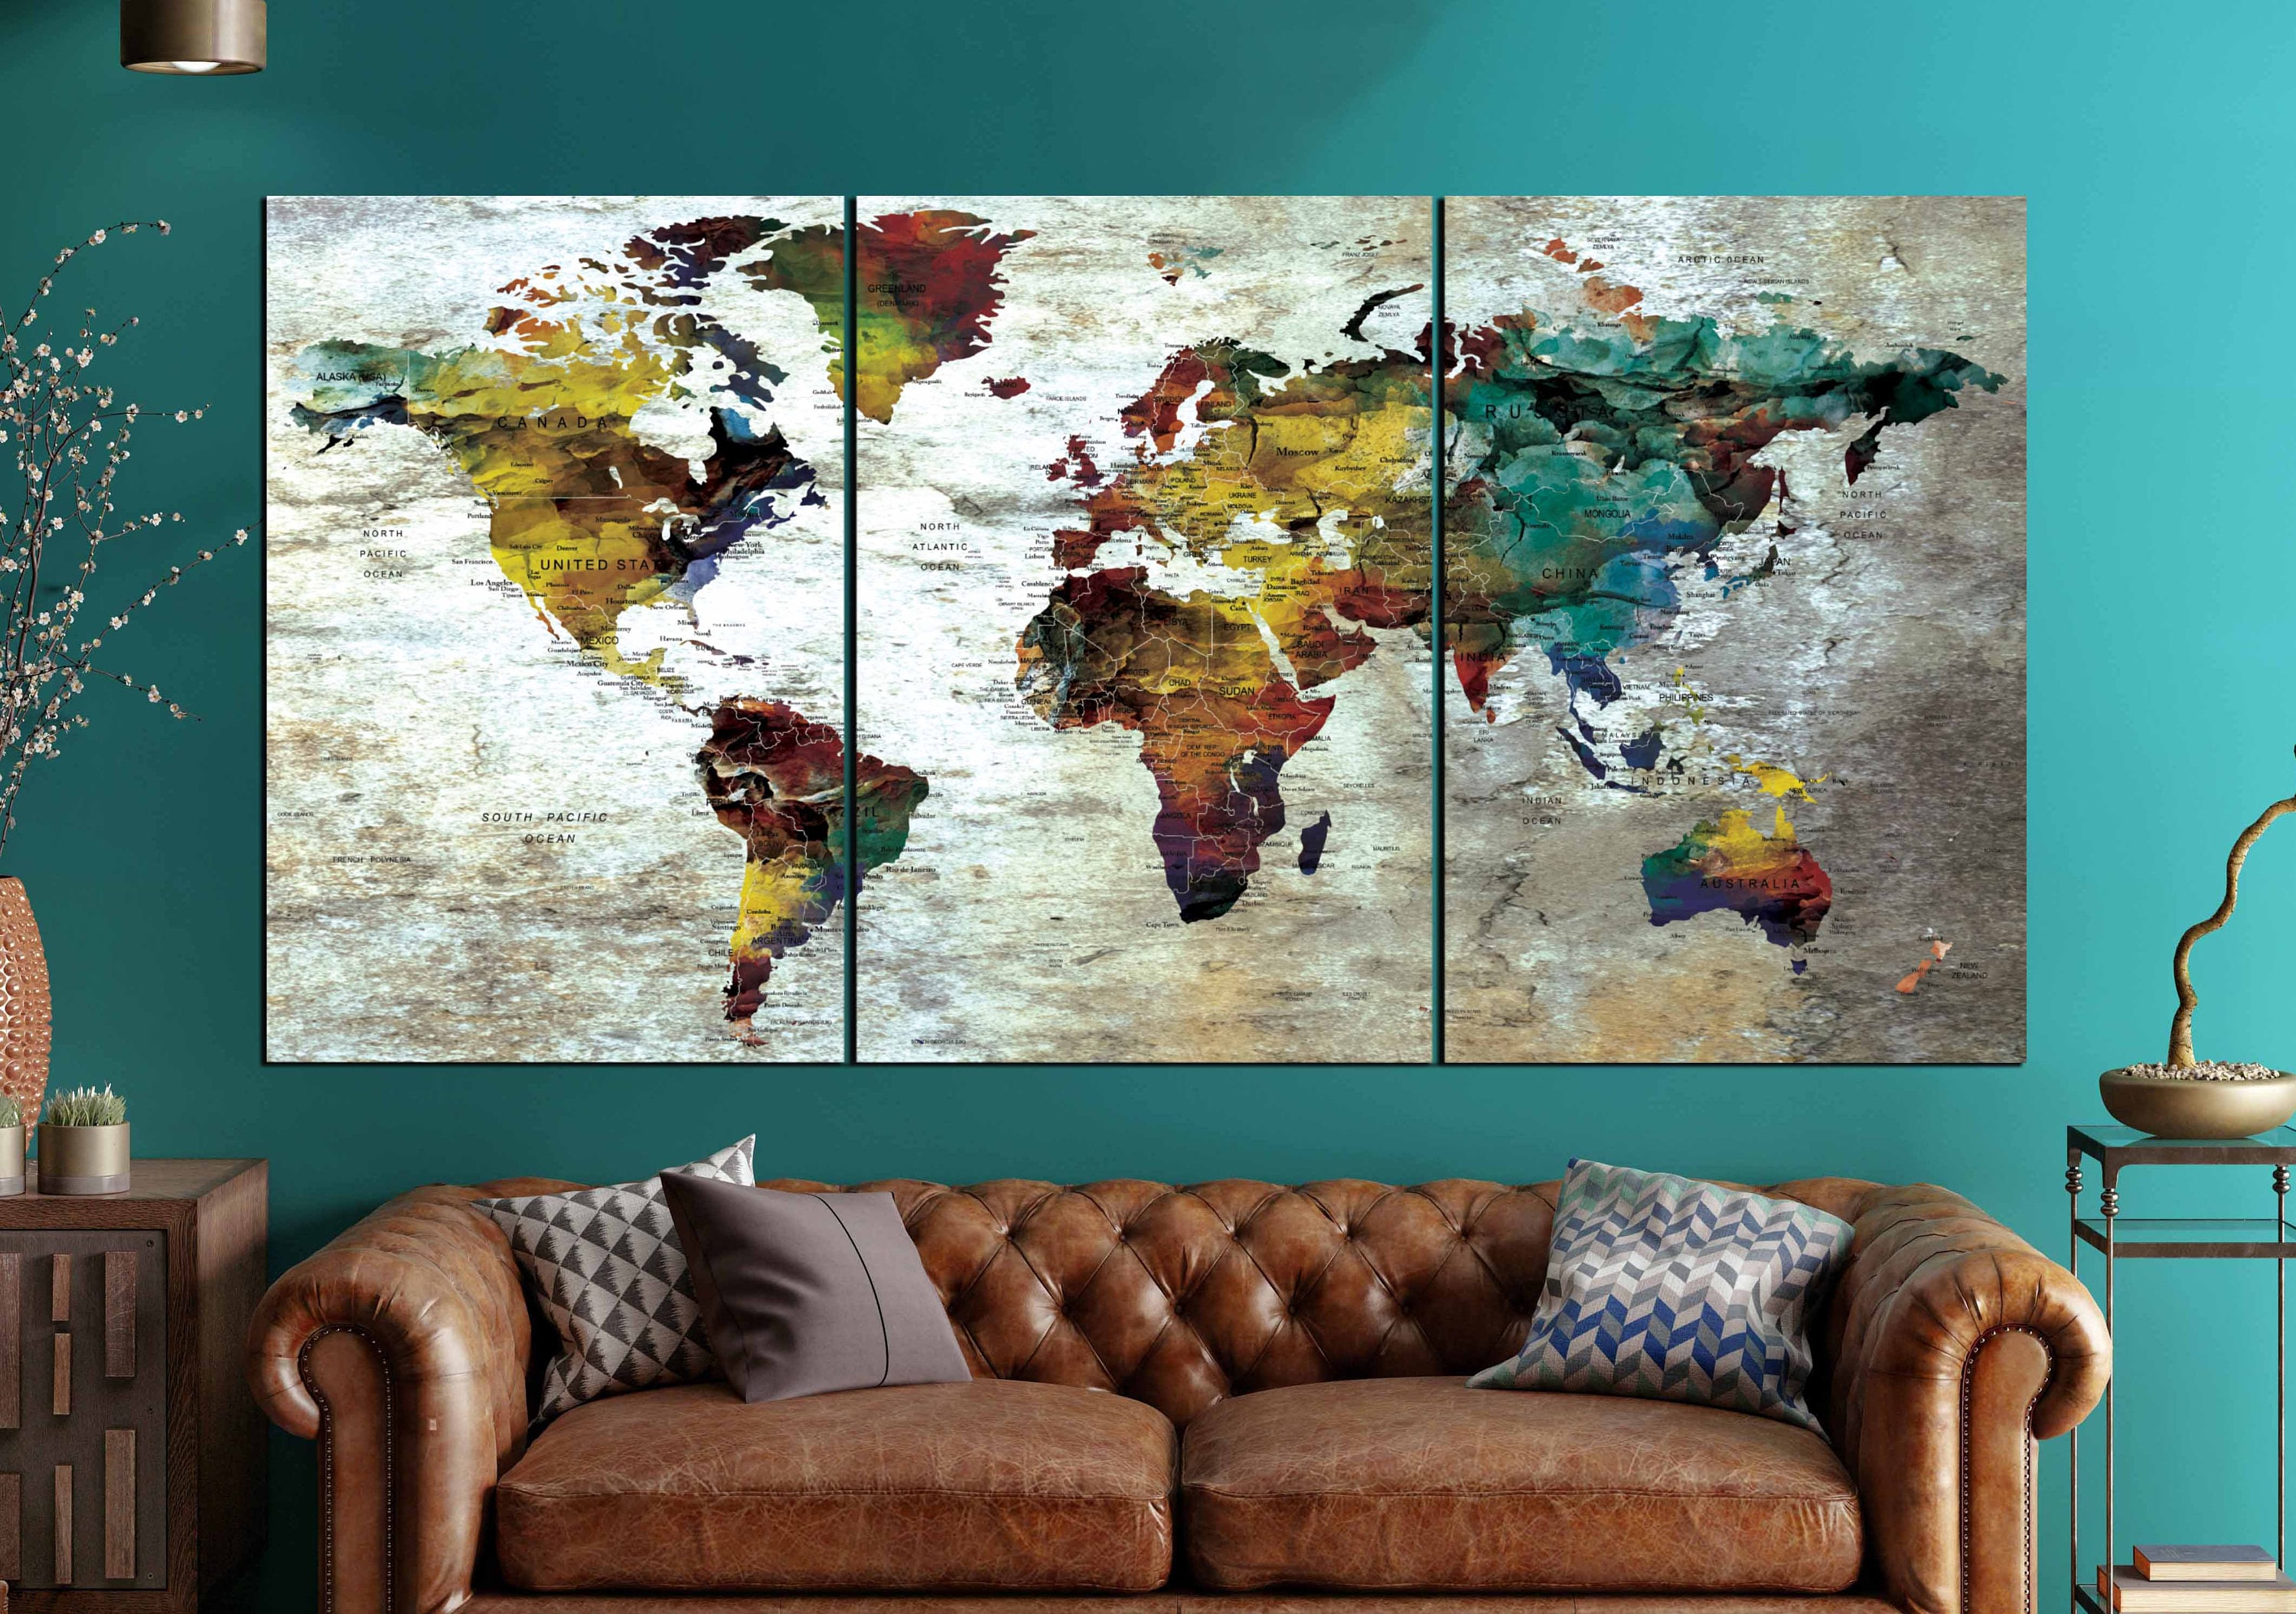 Detailed push pin map large canvas panelworld map wall artlarge detailed push pin map large canvas panelworld map wall artlarge world mapworld map canvasworld map printworld map artpush pin map art gumiabroncs Gallery